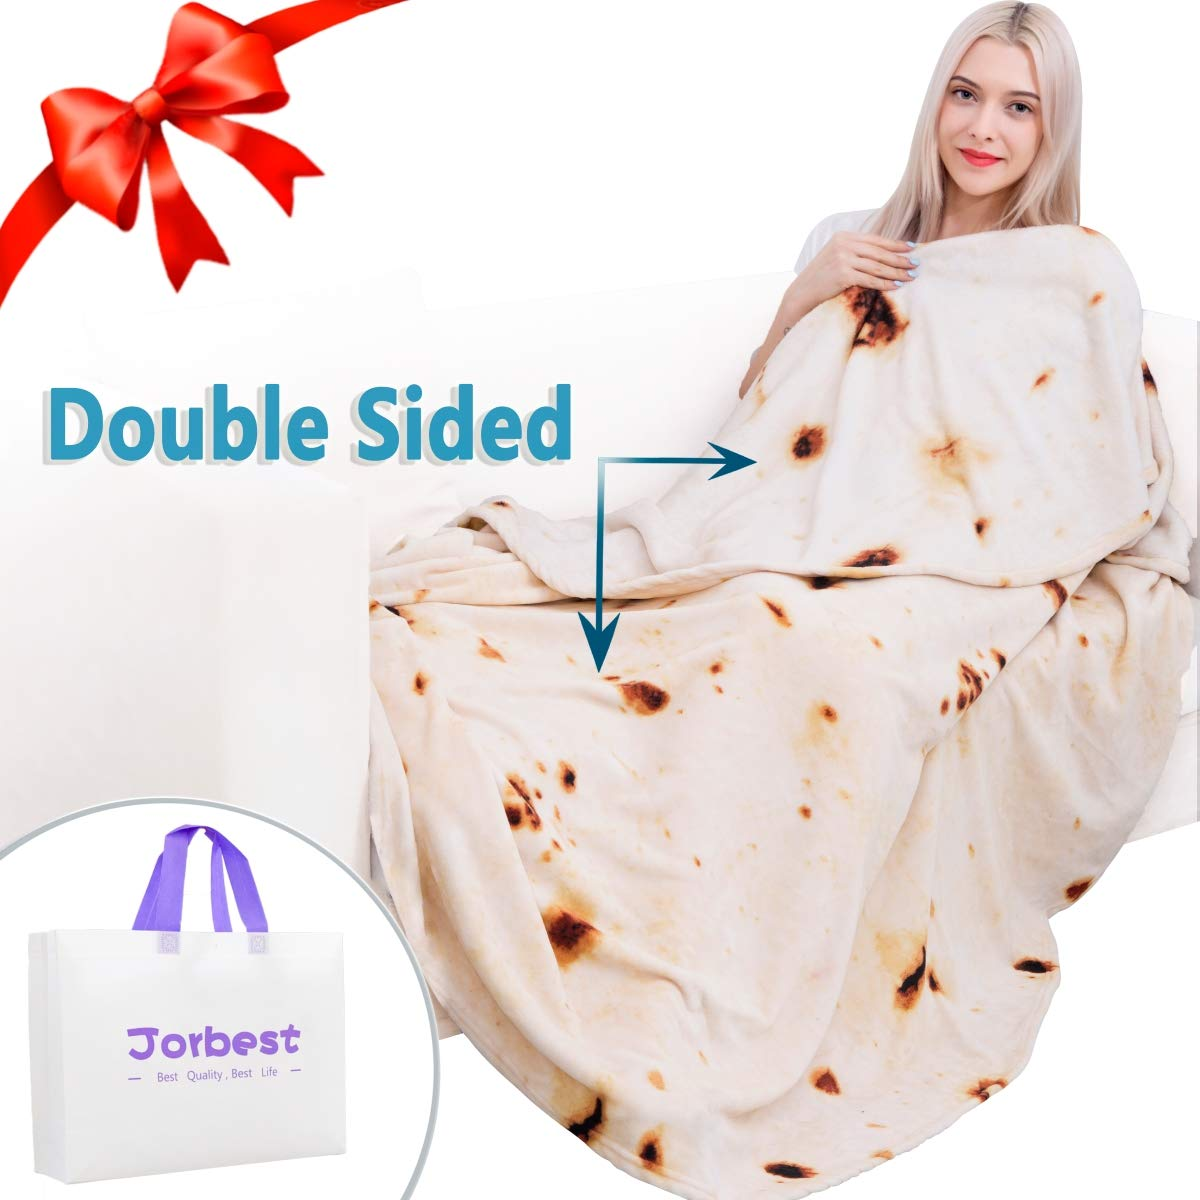 Jorbest Burritos Tortilla Blanket 2.0 Double Sided for Adult and Kids, Comfort Throw Blanket, Novelty Round Food Blanket for Everyone - Diameter 71 inches, Yellow Blanket-a